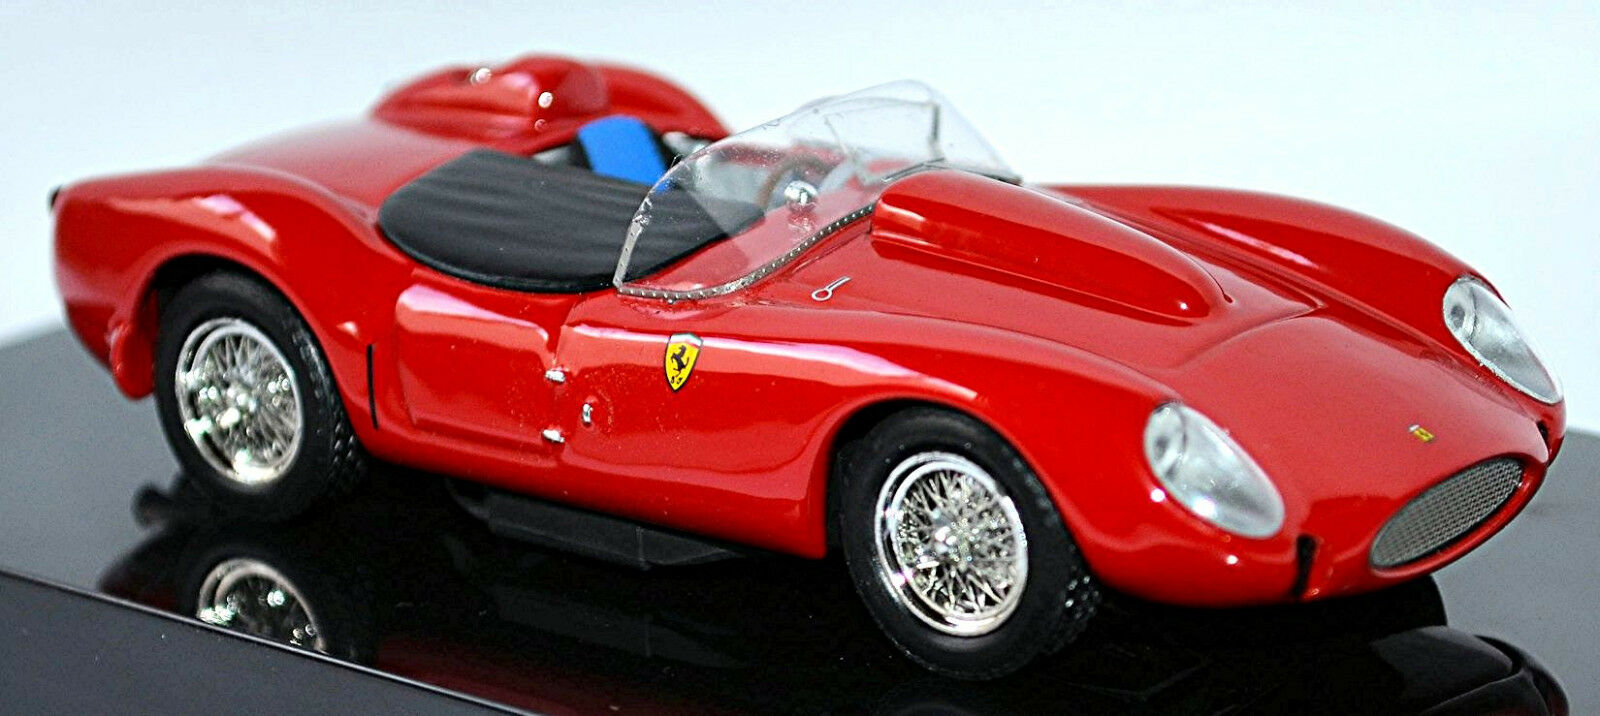 Ferrari 250 Testa Rossa 1956-57 Rojo rojo 1 43 Hot Wheels Elite